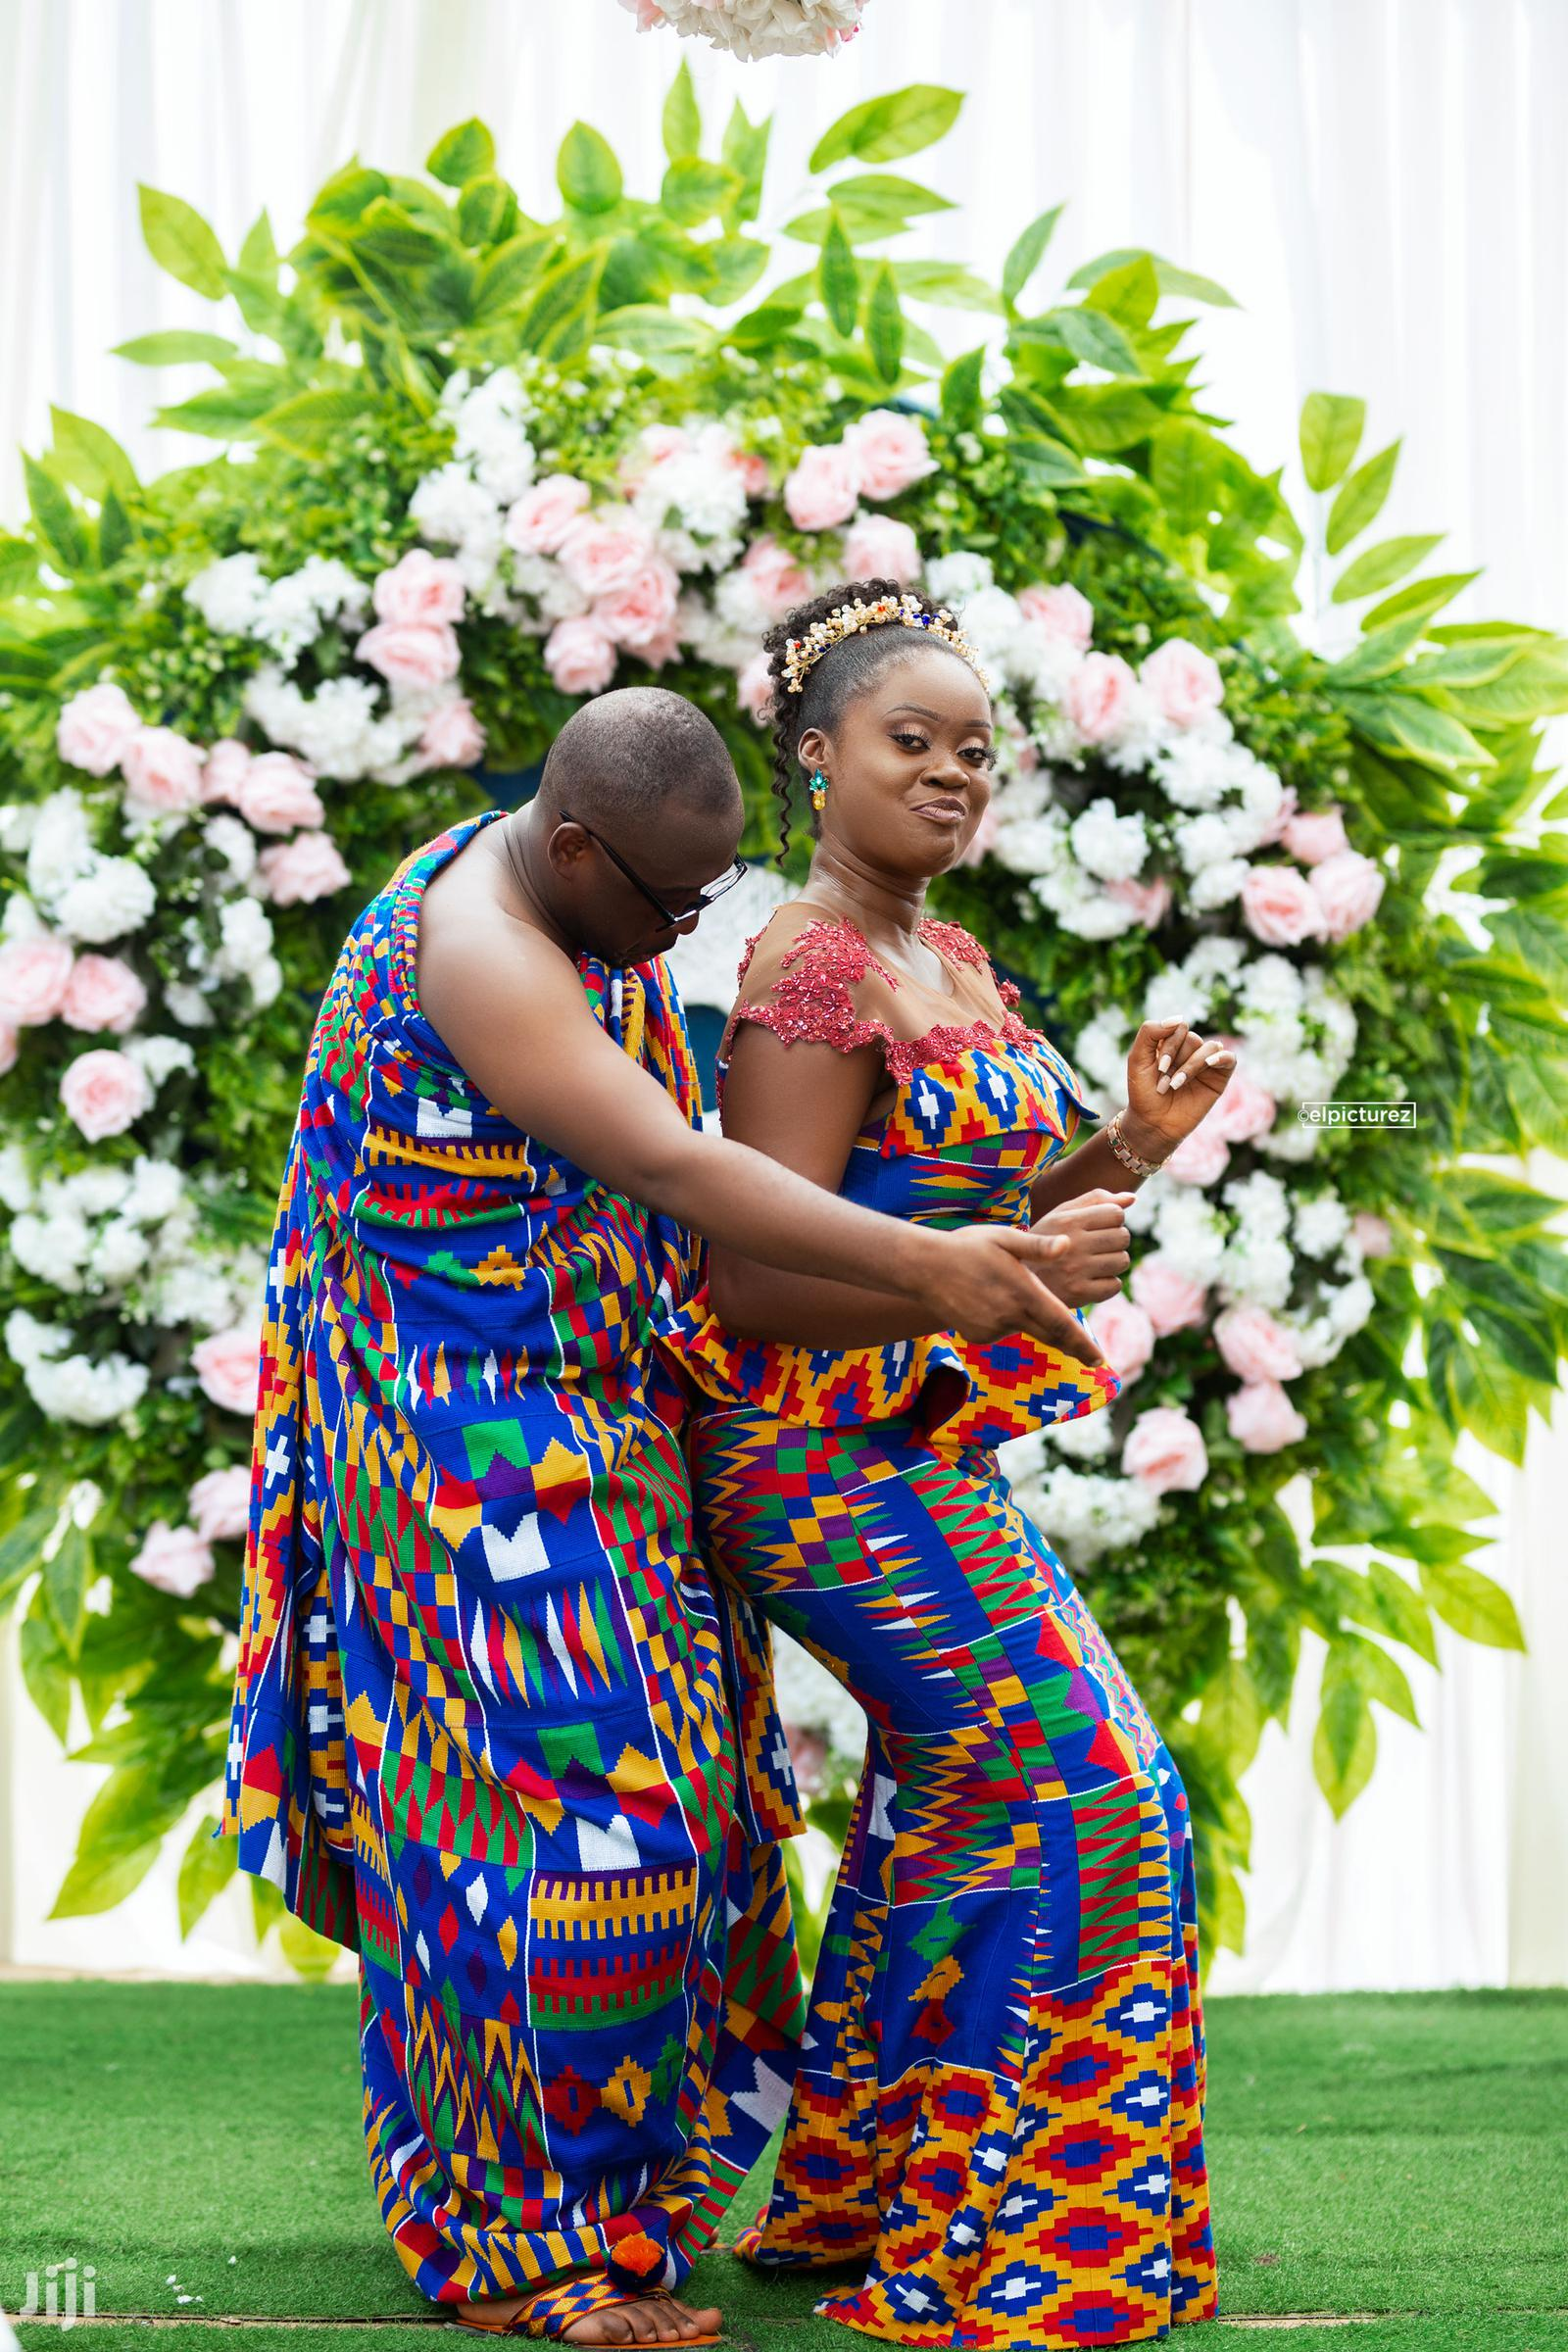 Engagement | Photography & Video Services for sale in Kumasi Metropolitan, Ashanti, Ghana